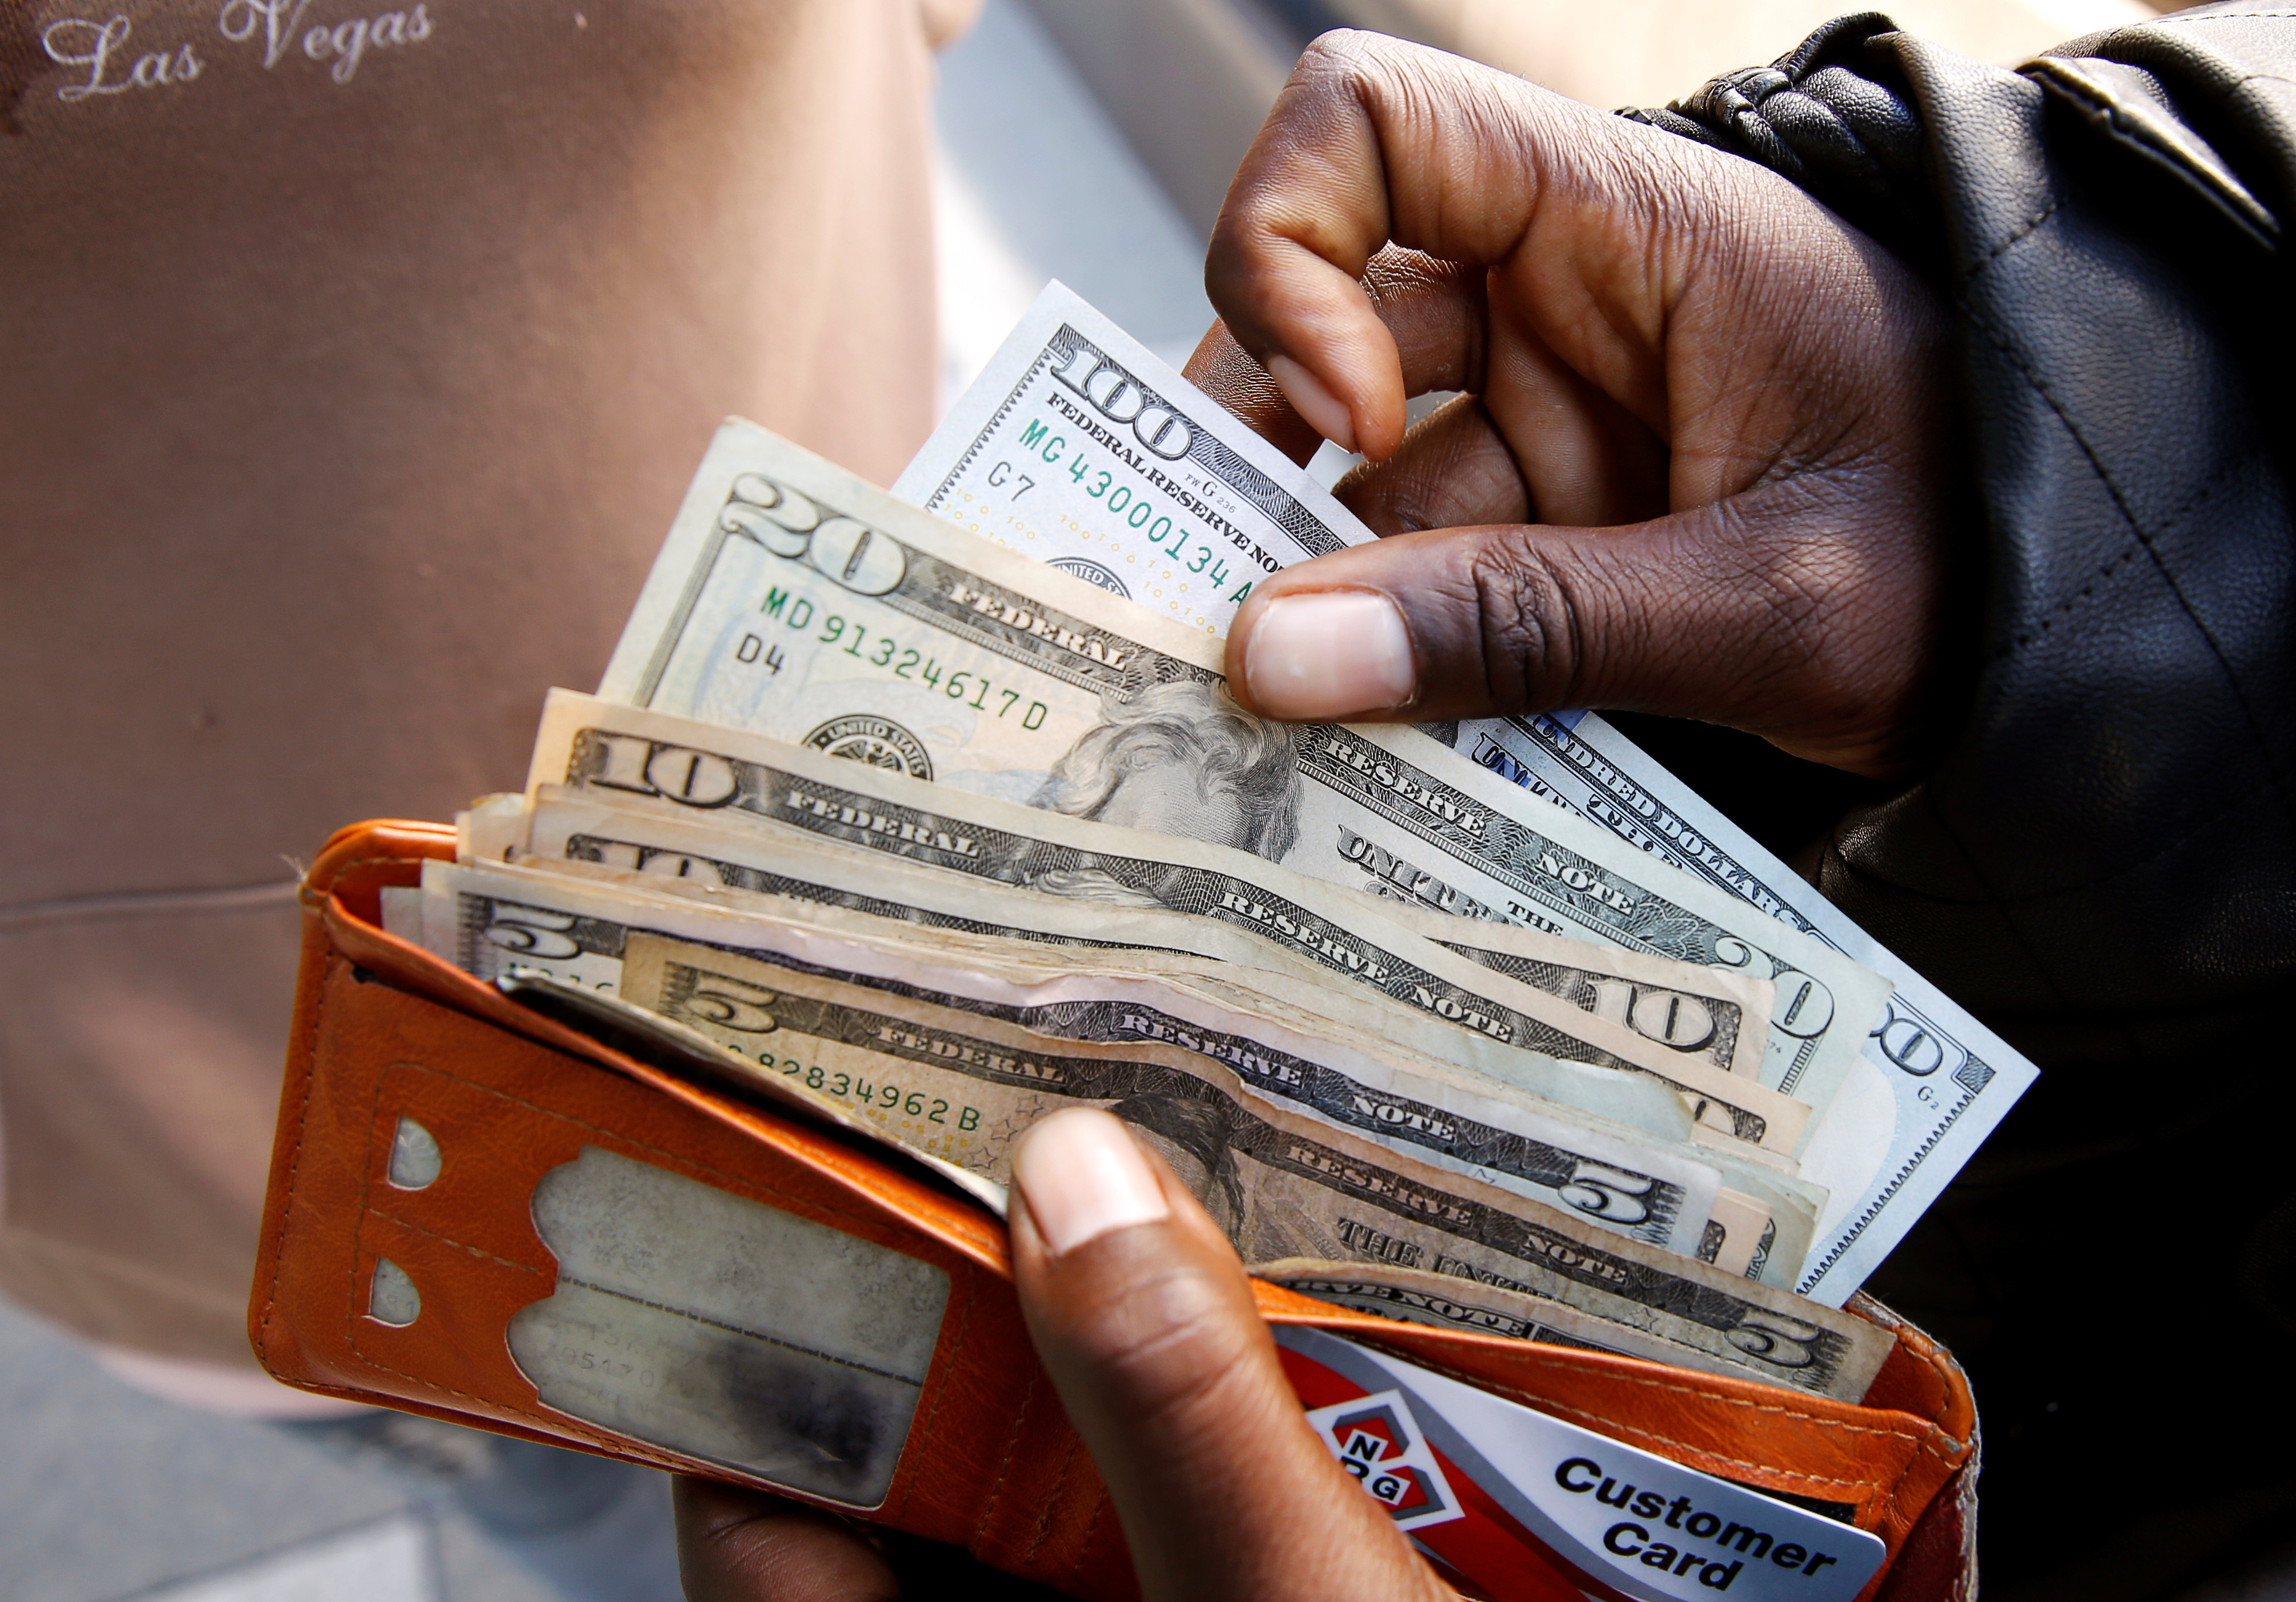 A man displays US dollar notes after withdrawing cash from a bank in Harare, Zimbabwe,  July 9, 2019. REUTERS/Philimon Bulawayo